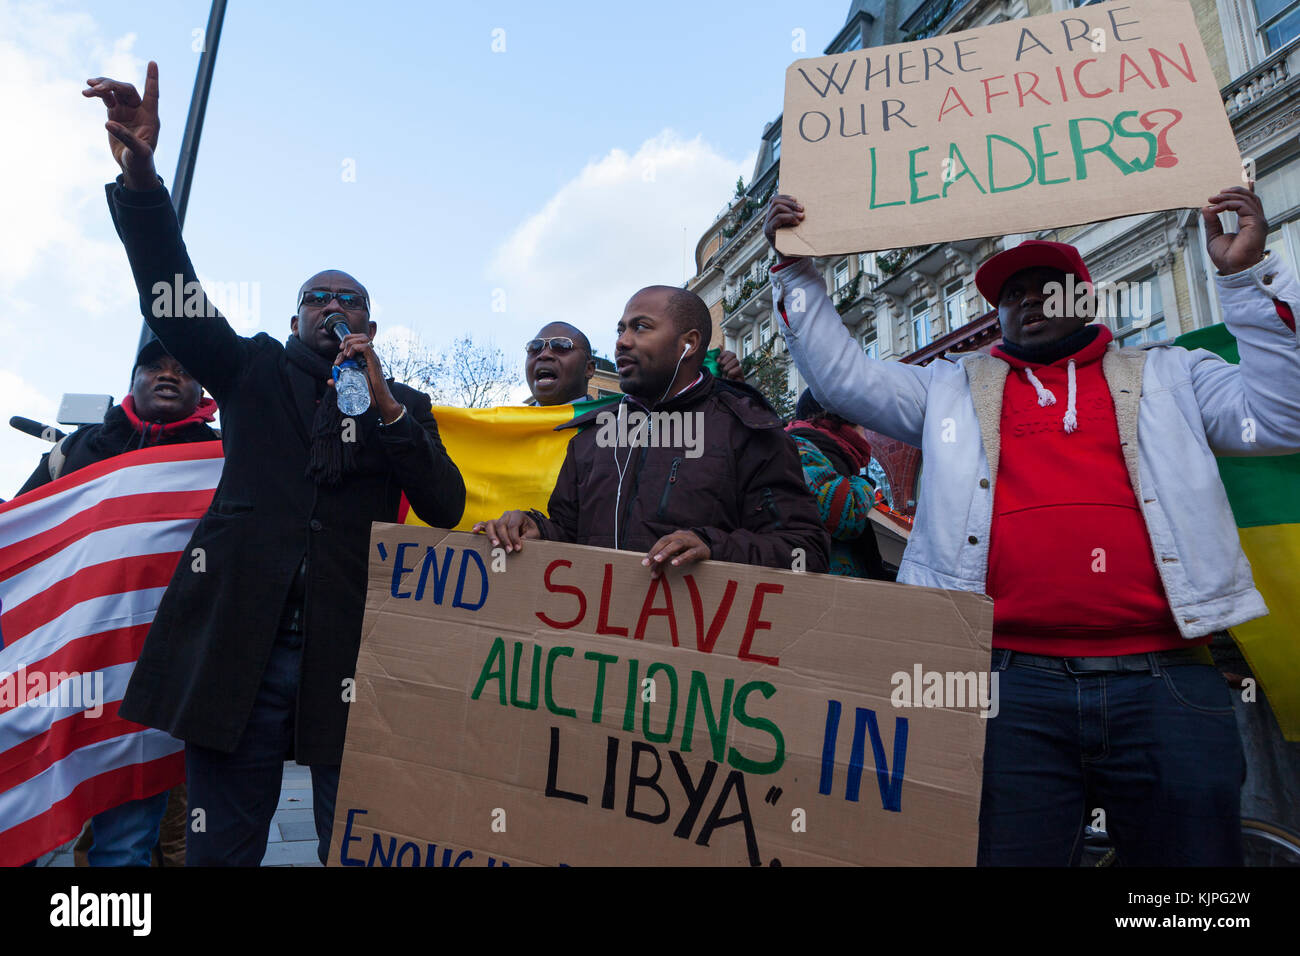 London, UK. 26th Nov, 2017. 26 November, 2017. No Borders, No Slavery Protest. Embassy of Libya, London UK. Following - Stock Image